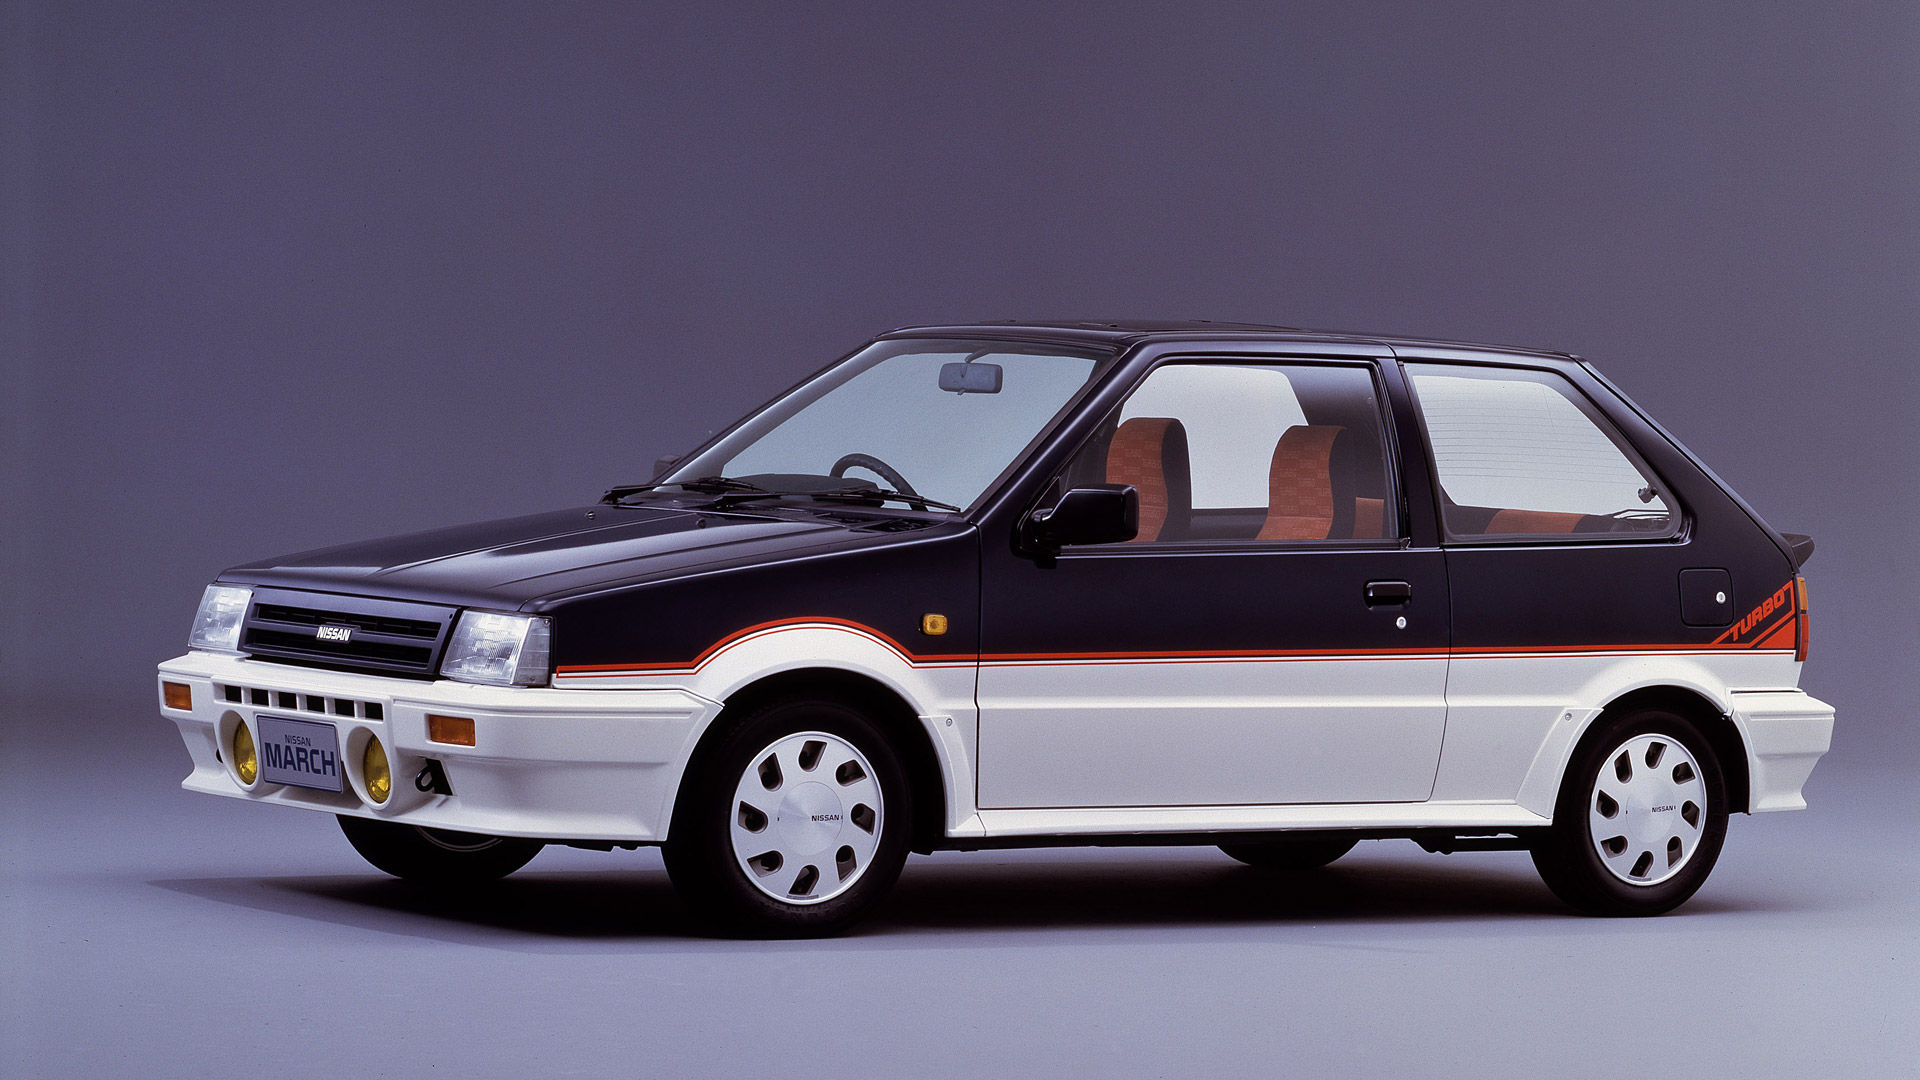 1985 Nissan March Turbo